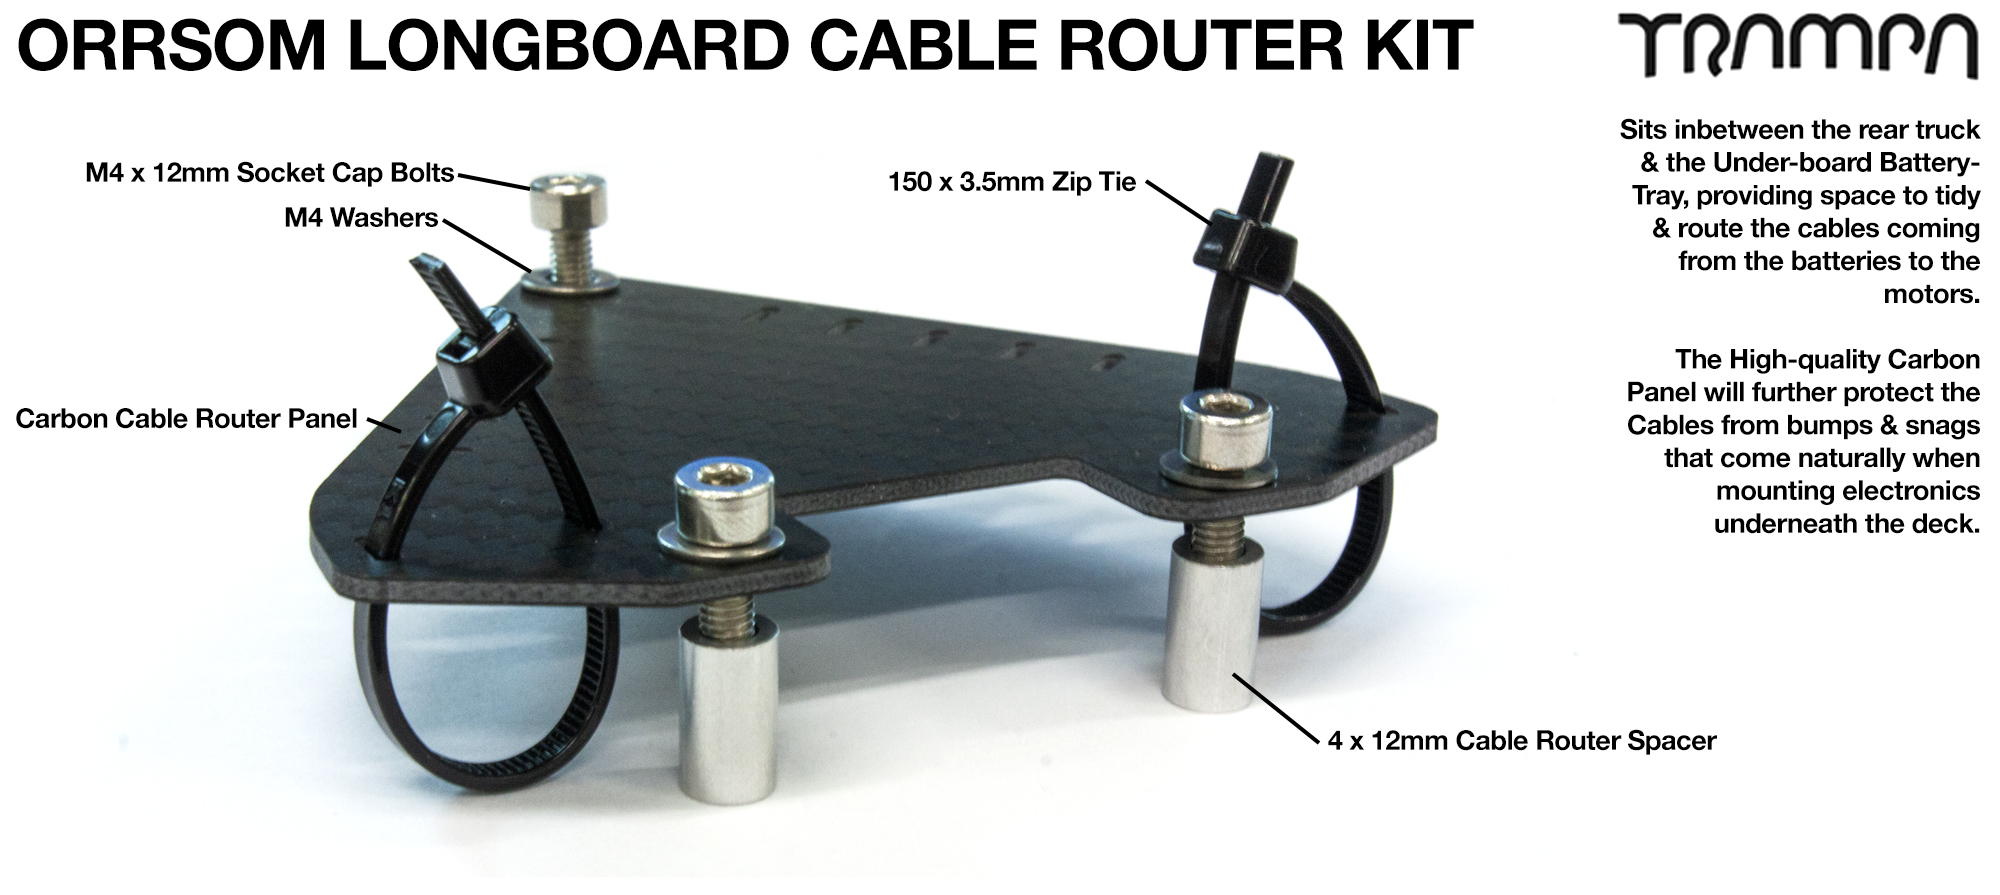 Orrsom Longboard Cable Routing Kit